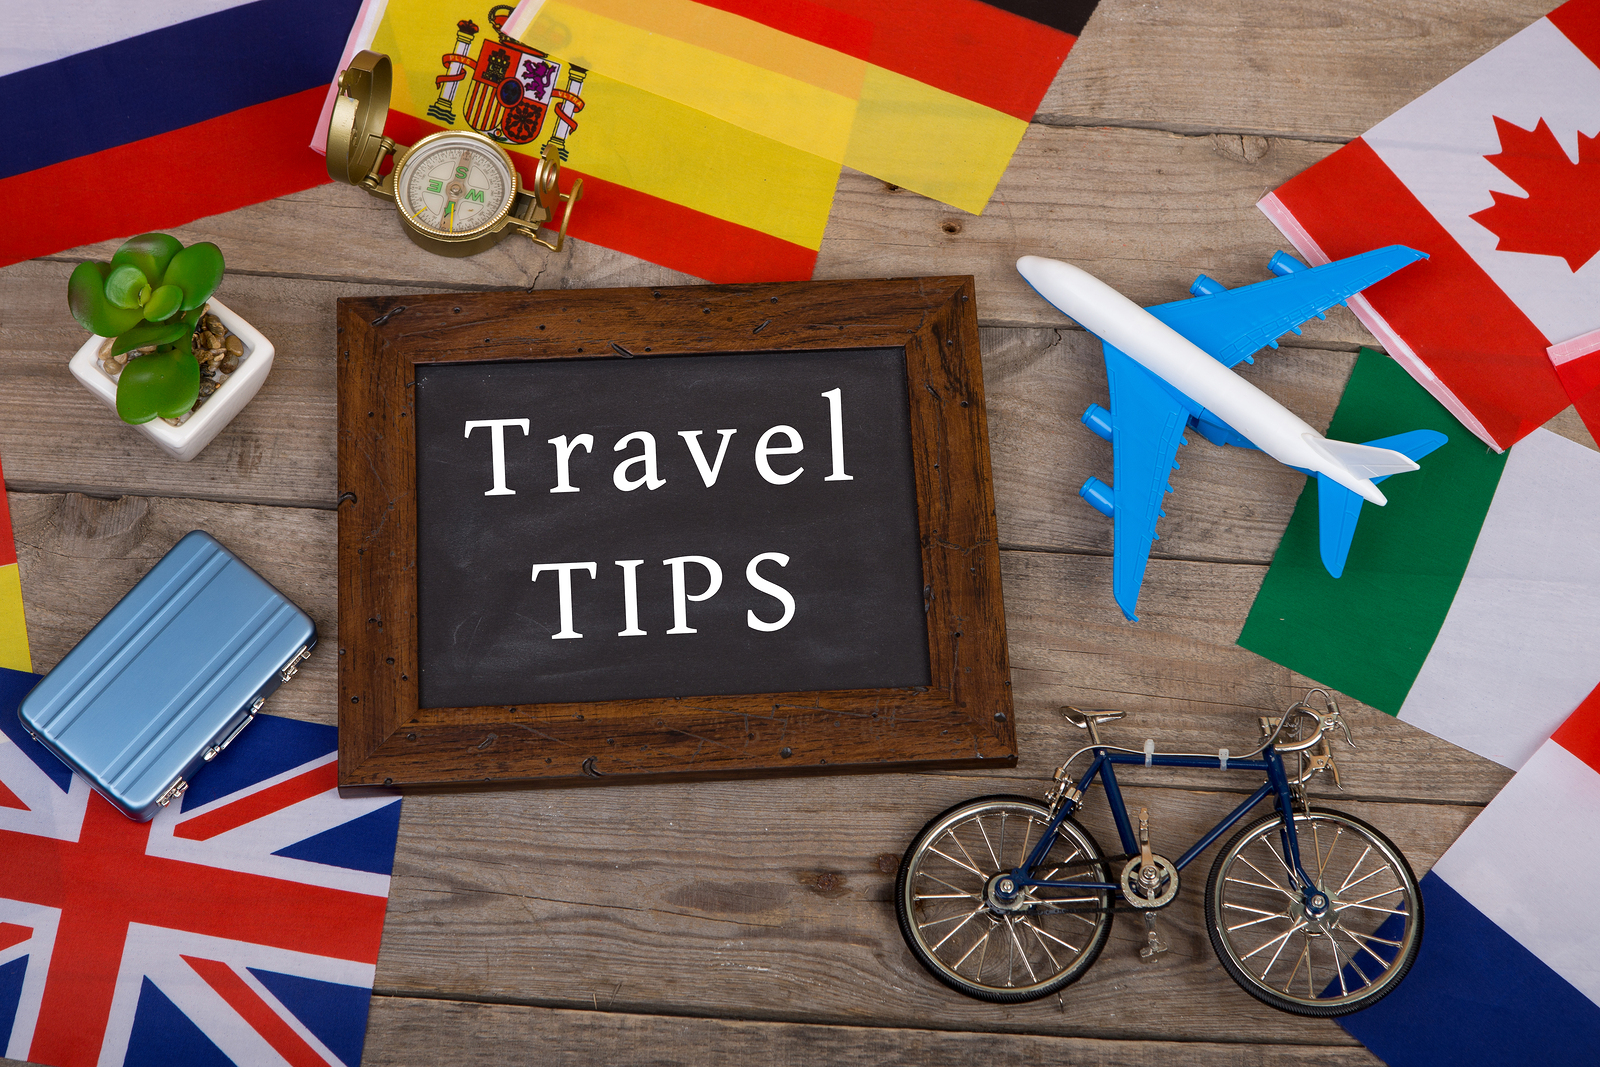 bigstock-travel-time--blackboard-with--211766170.jpg